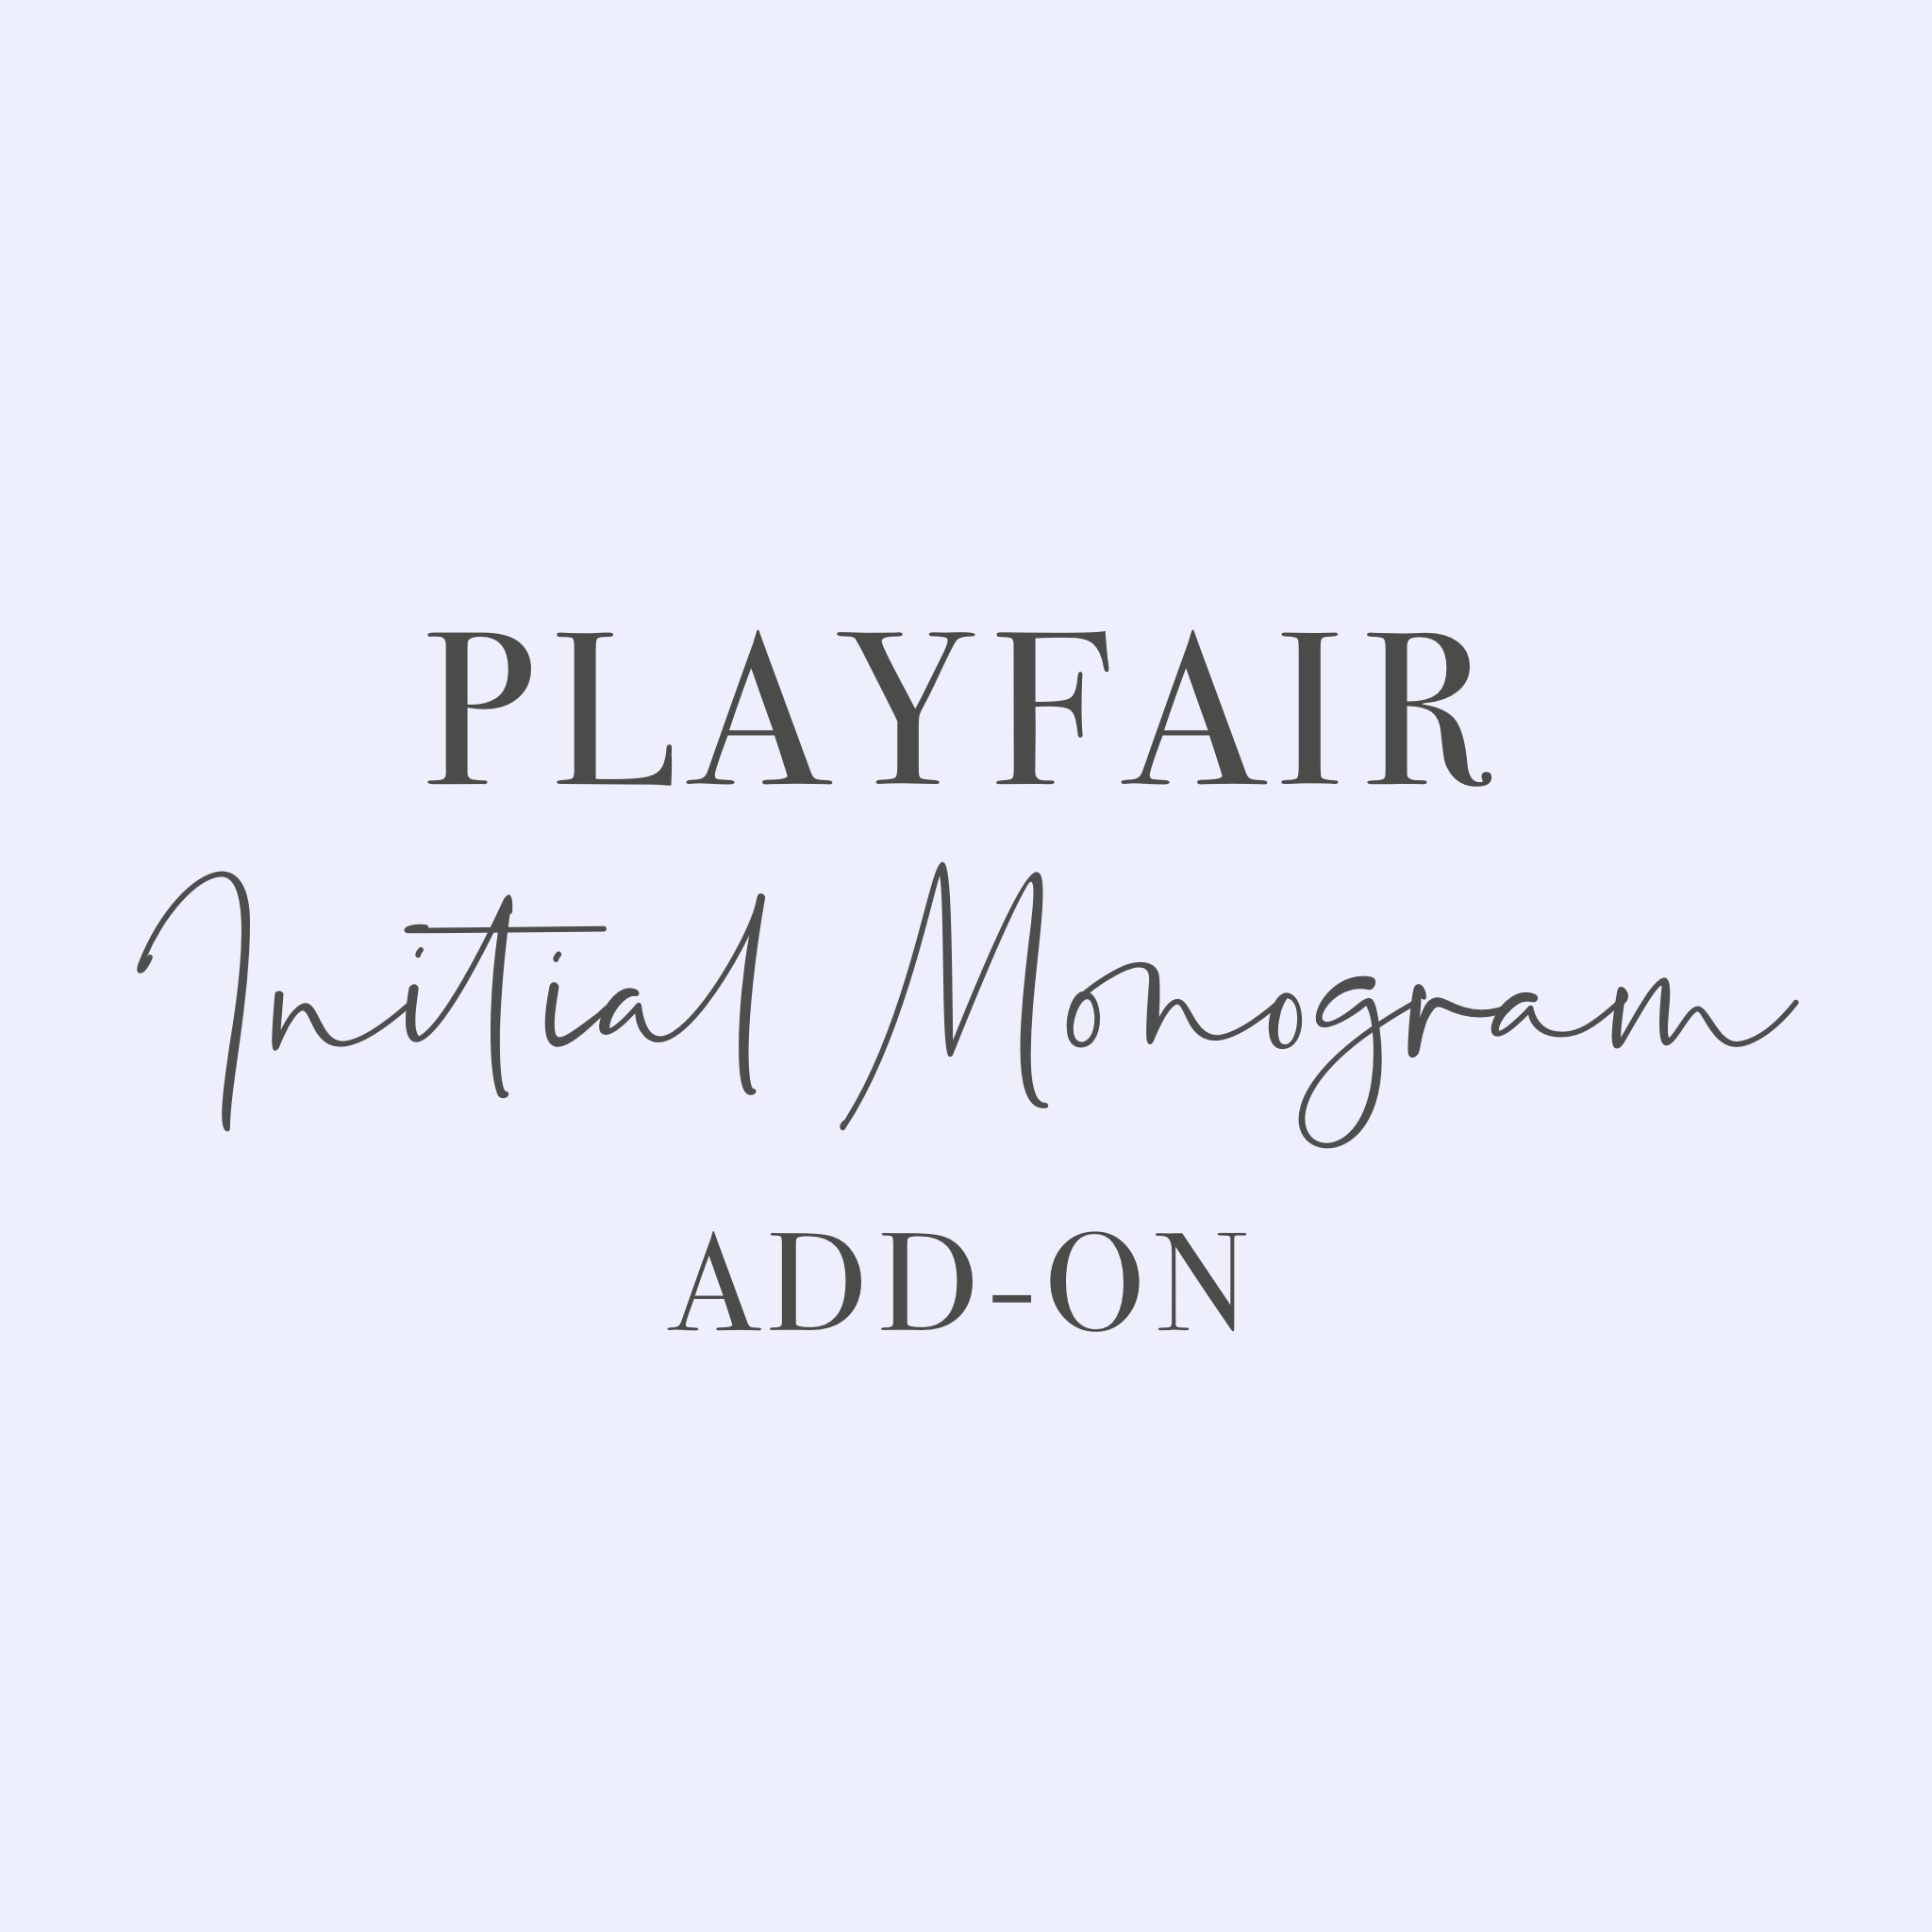 Playfair Initial Monogram Add-On